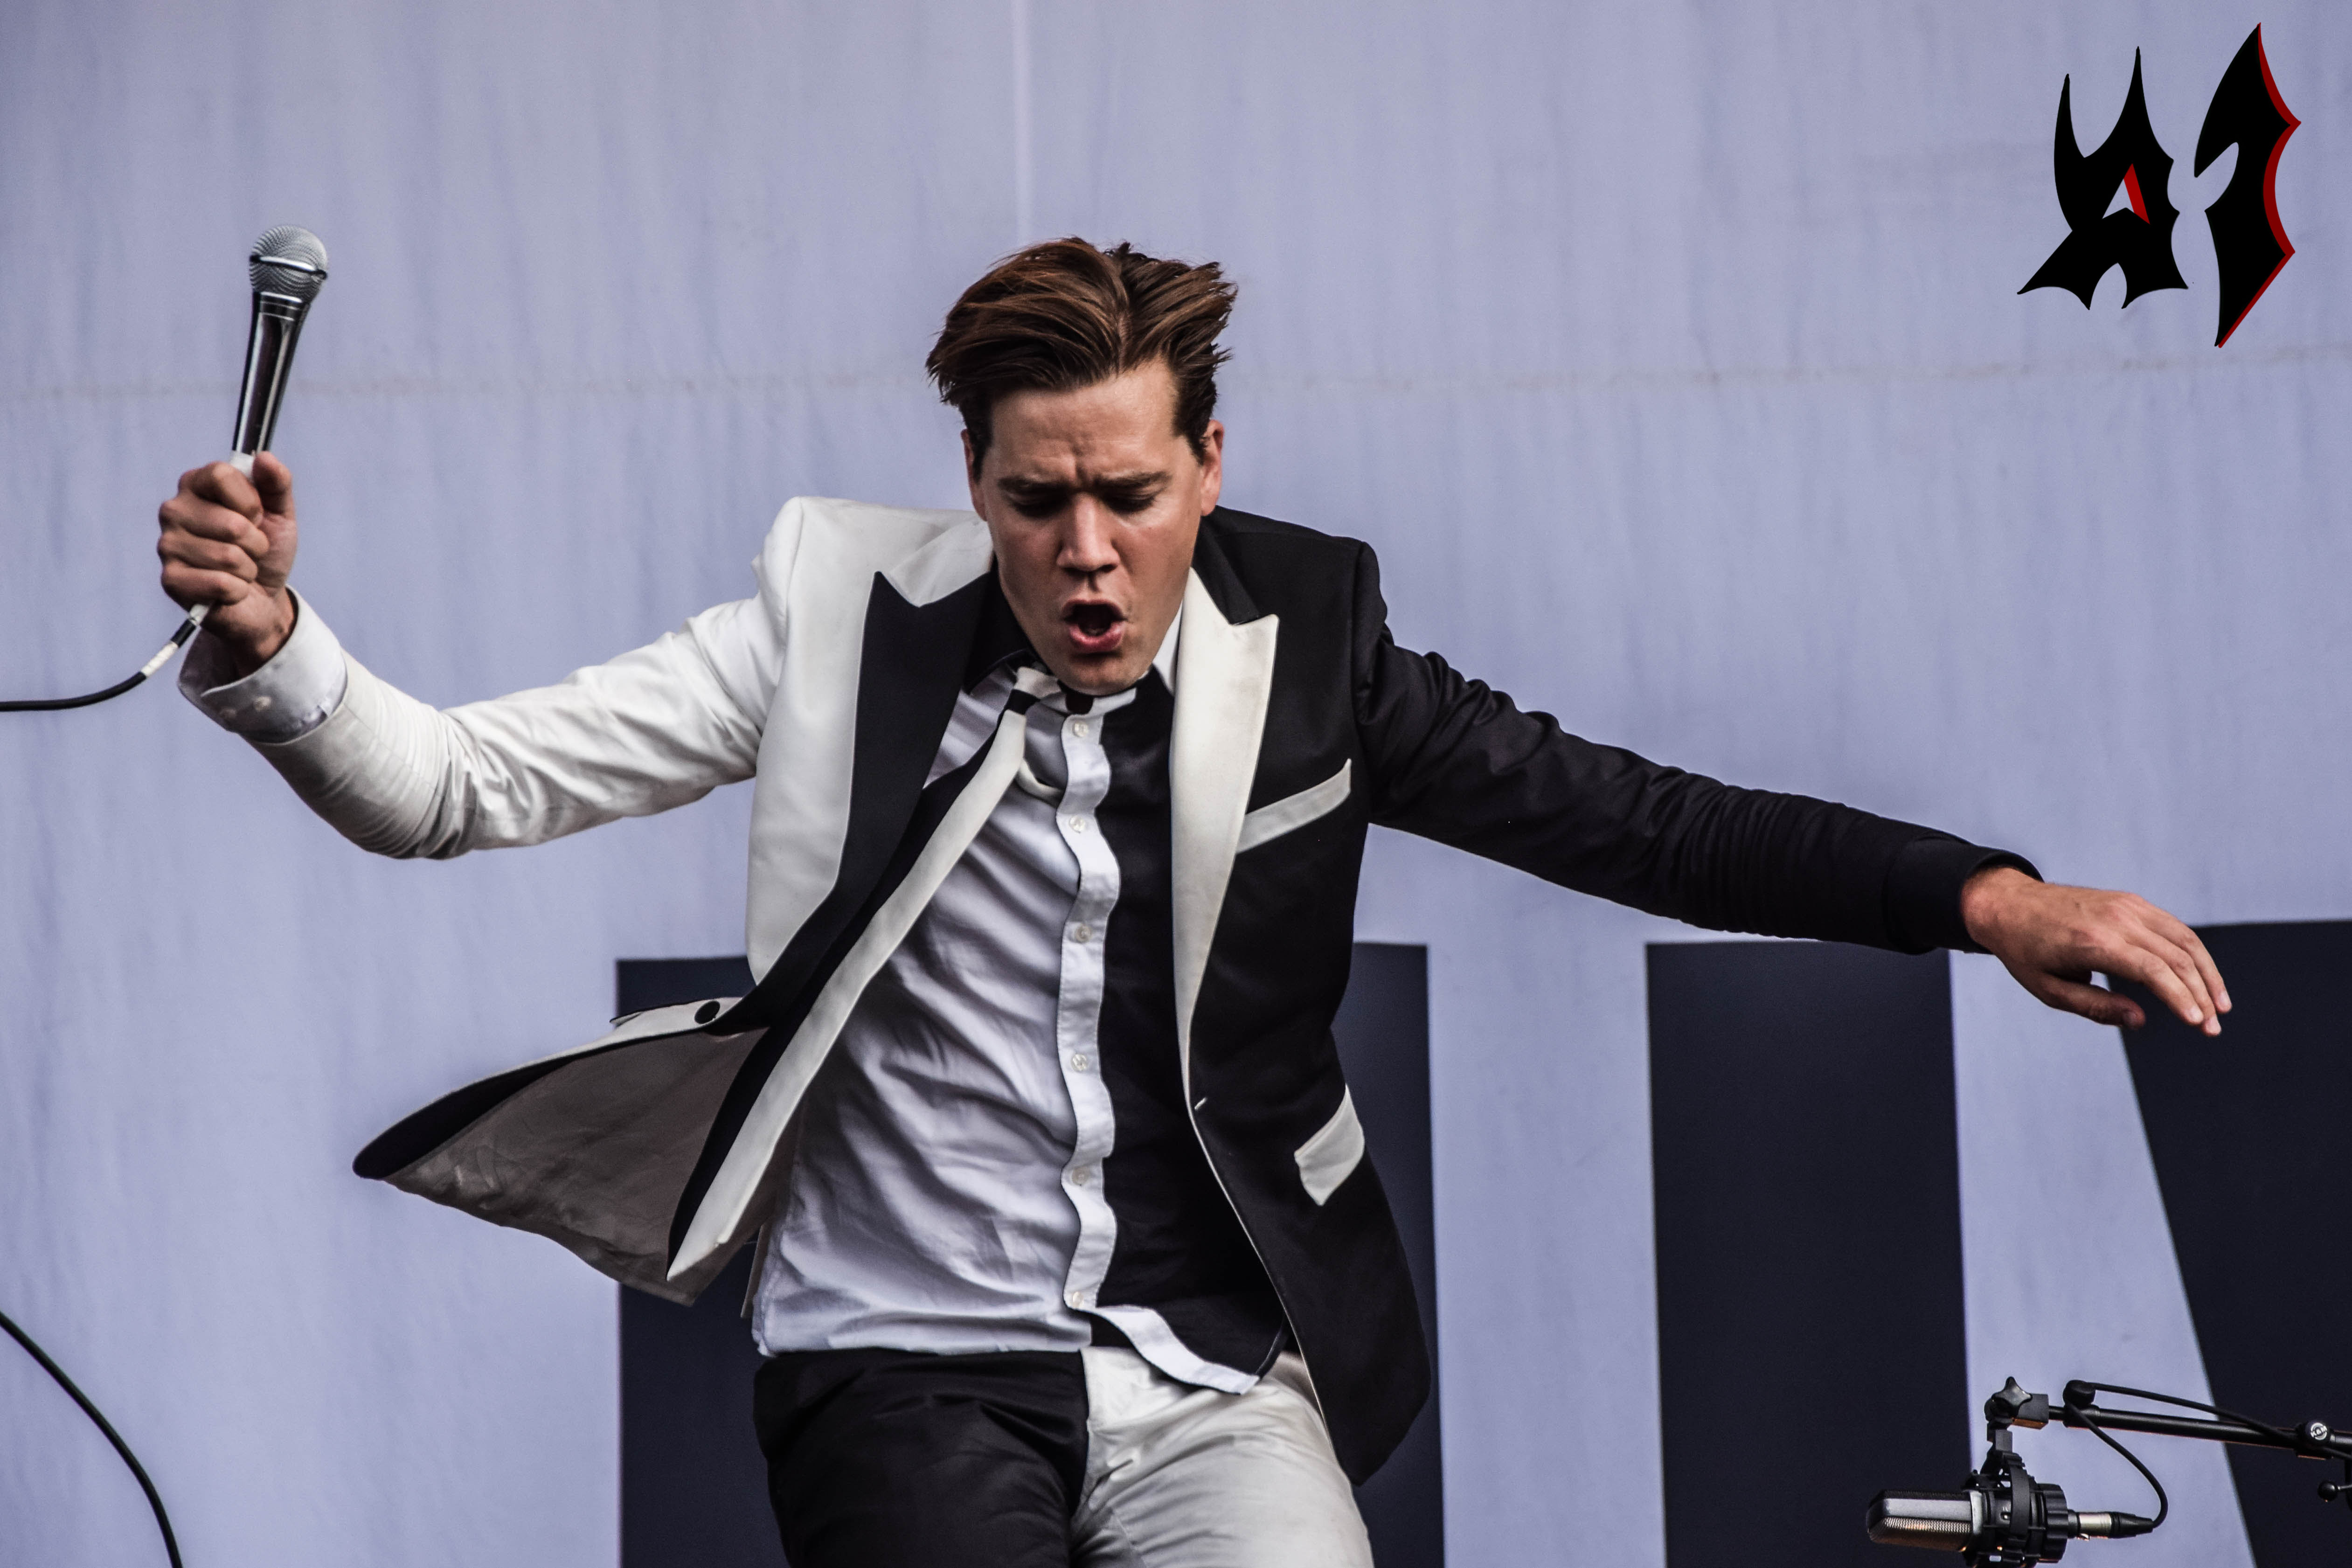 Donwload 2018 – Day 3 - The Hives 25